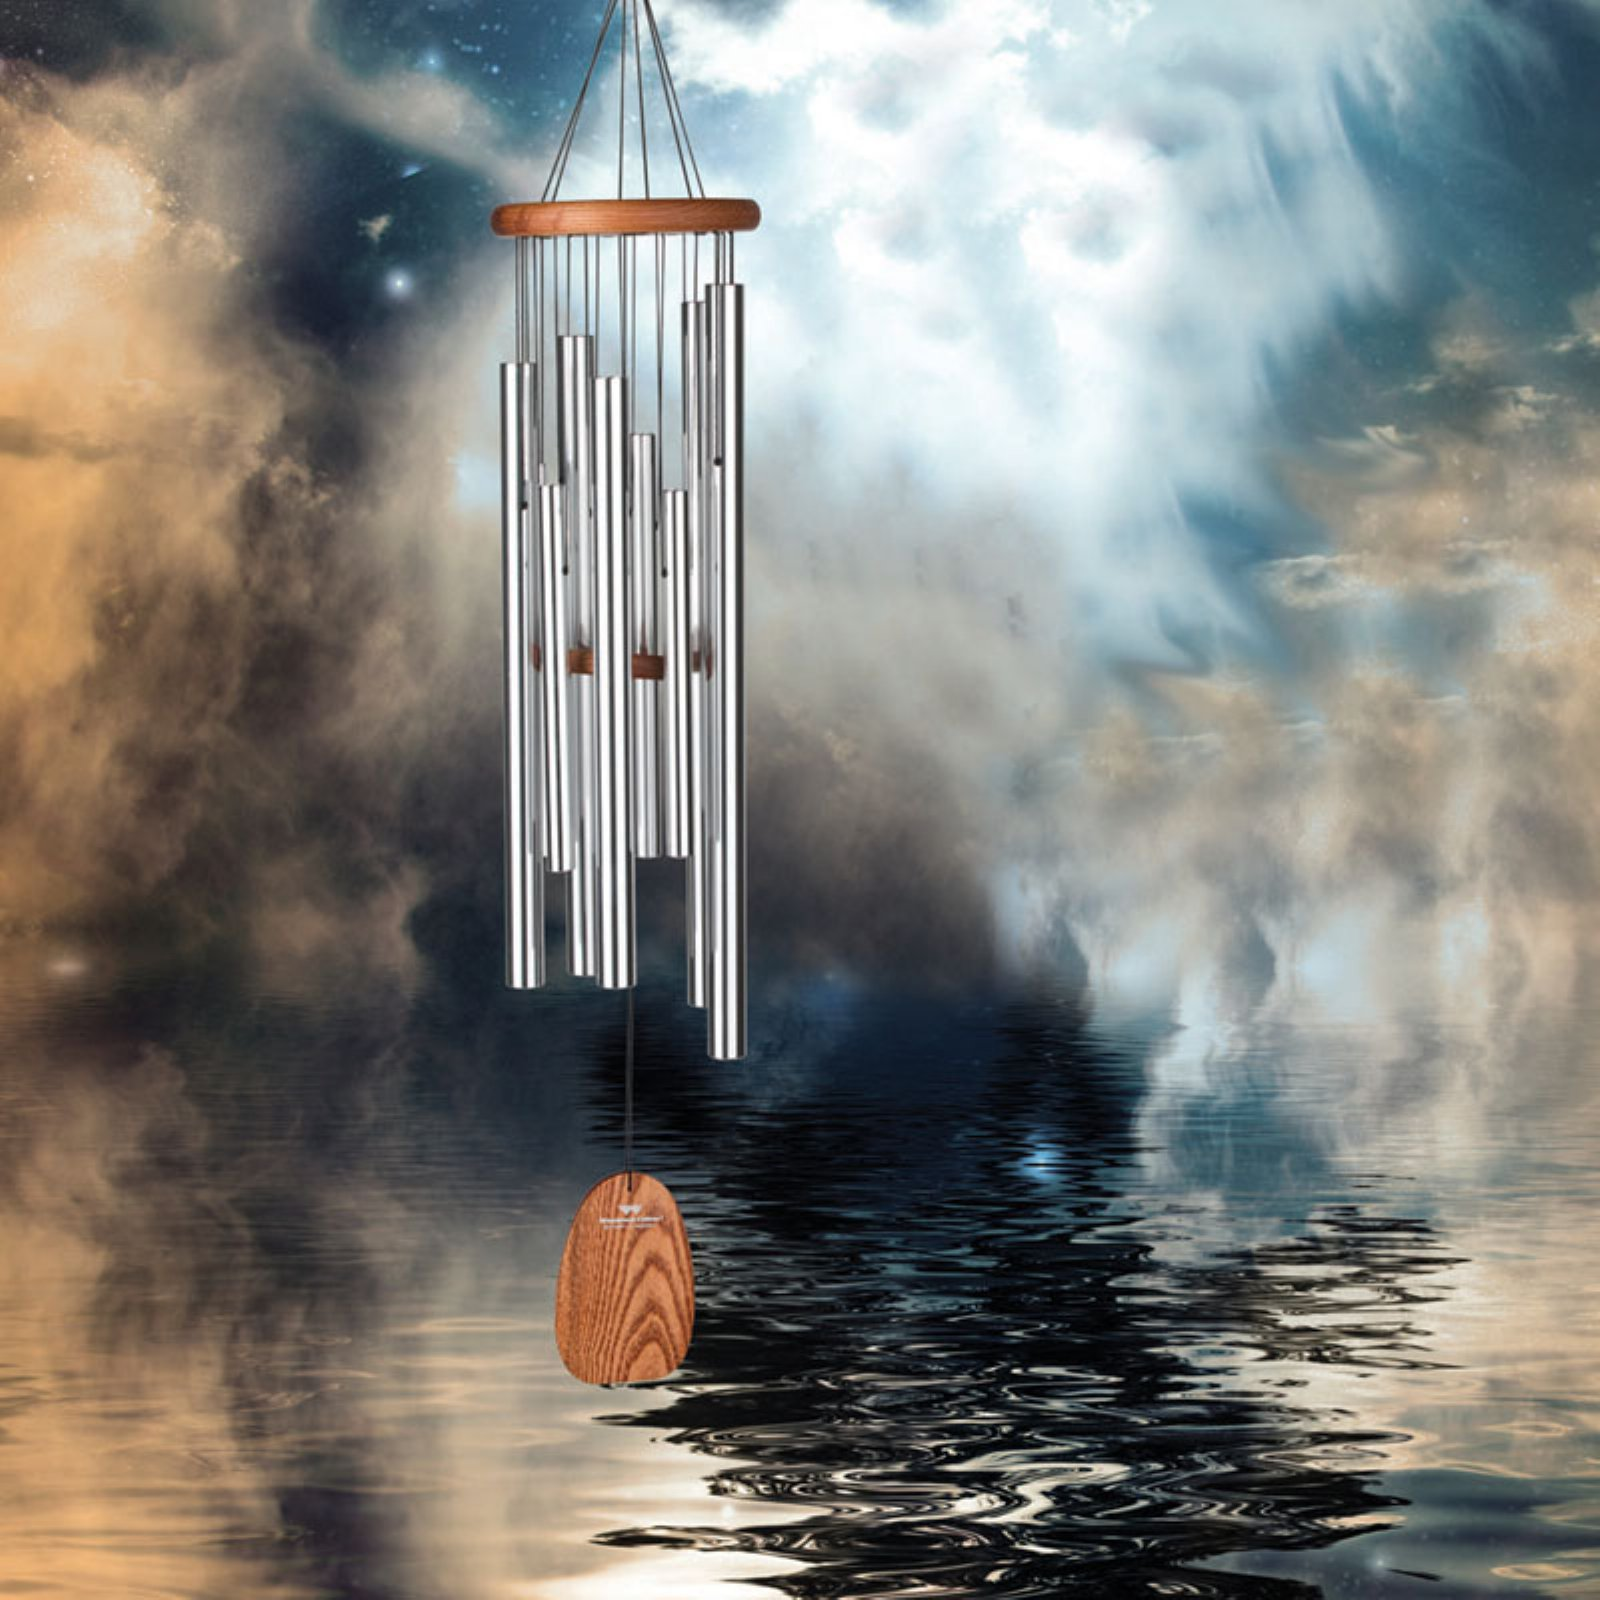 Woodstock Magical Mystery Butterflys Farewell Wind Chime by Woodstock